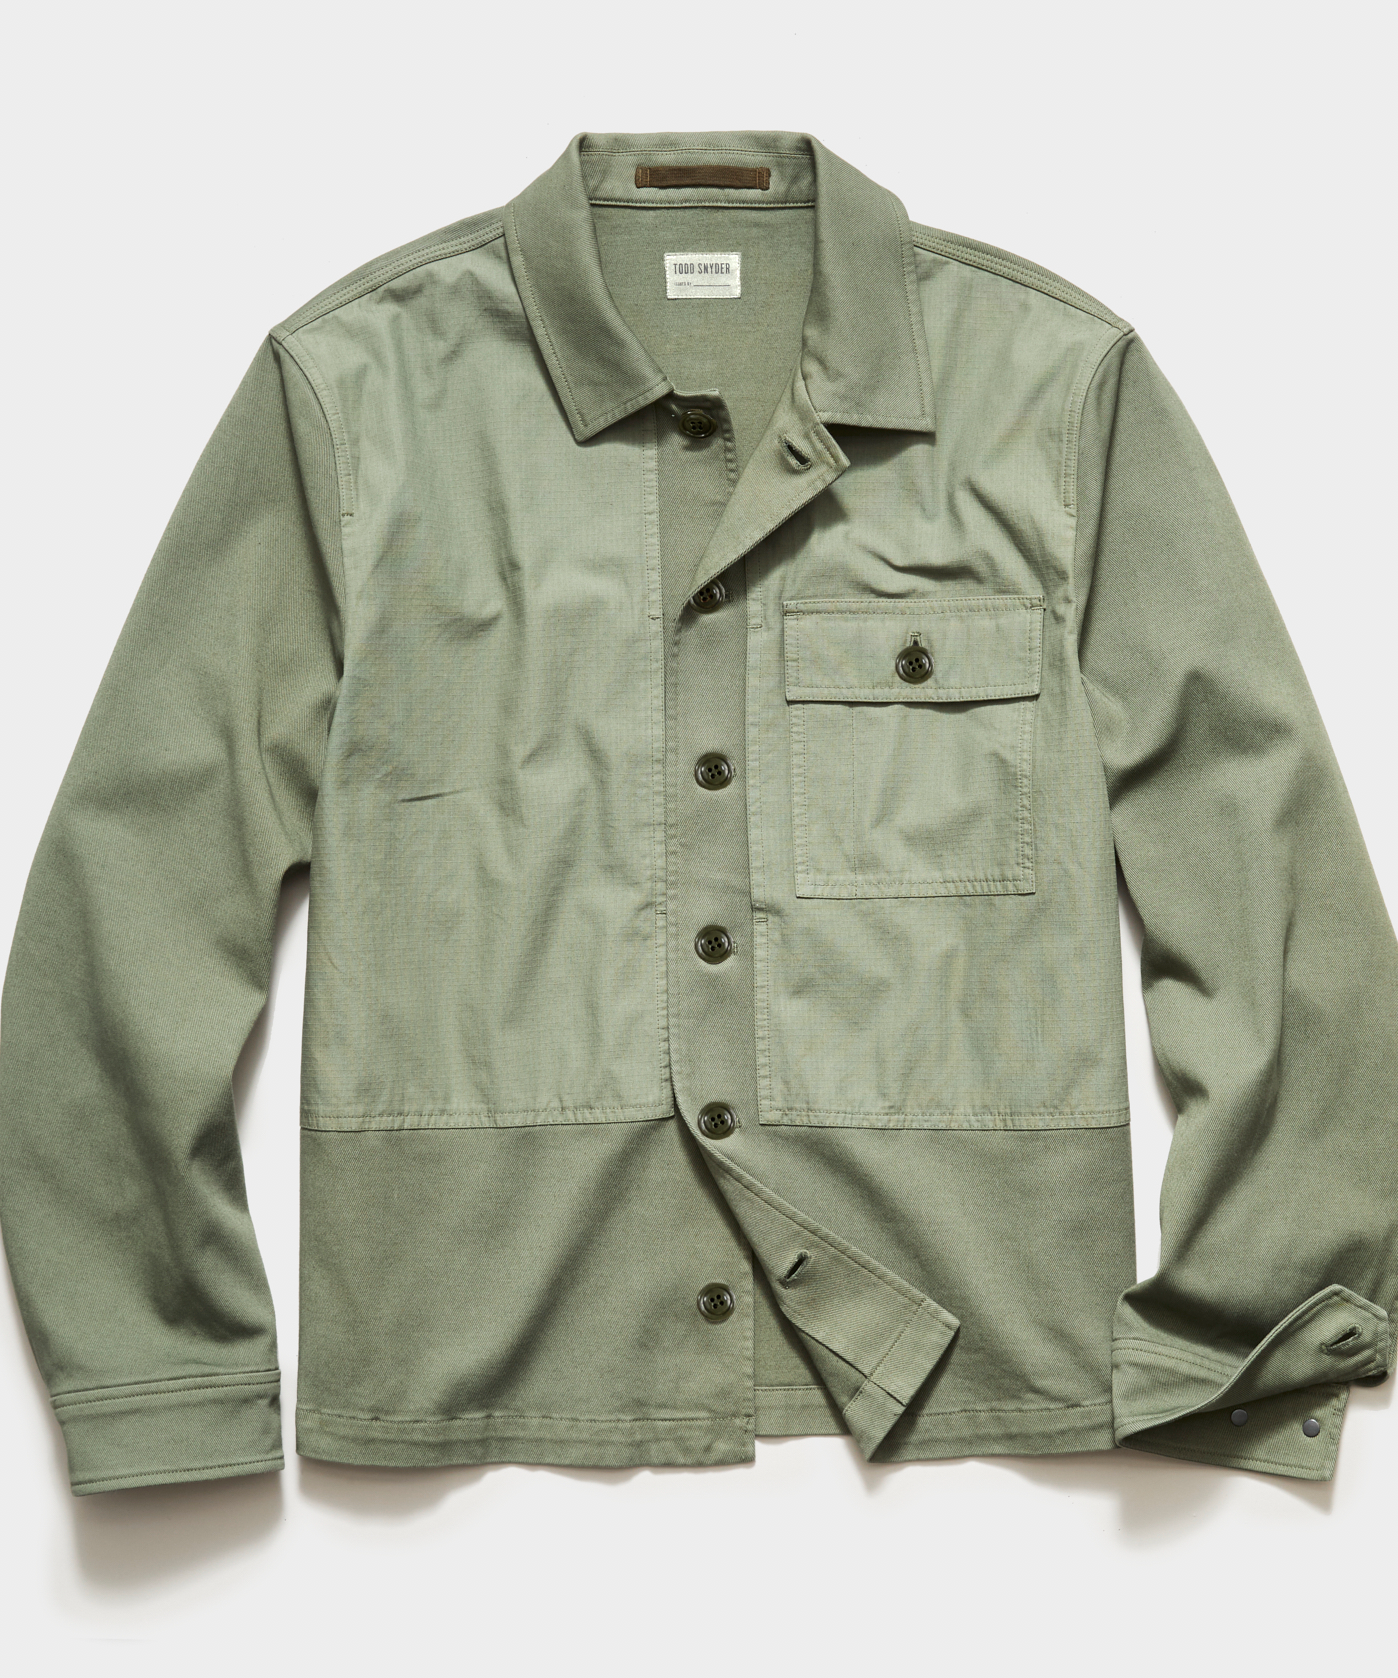 Italian Fatigue Mixed Media Corp Jacket in Green